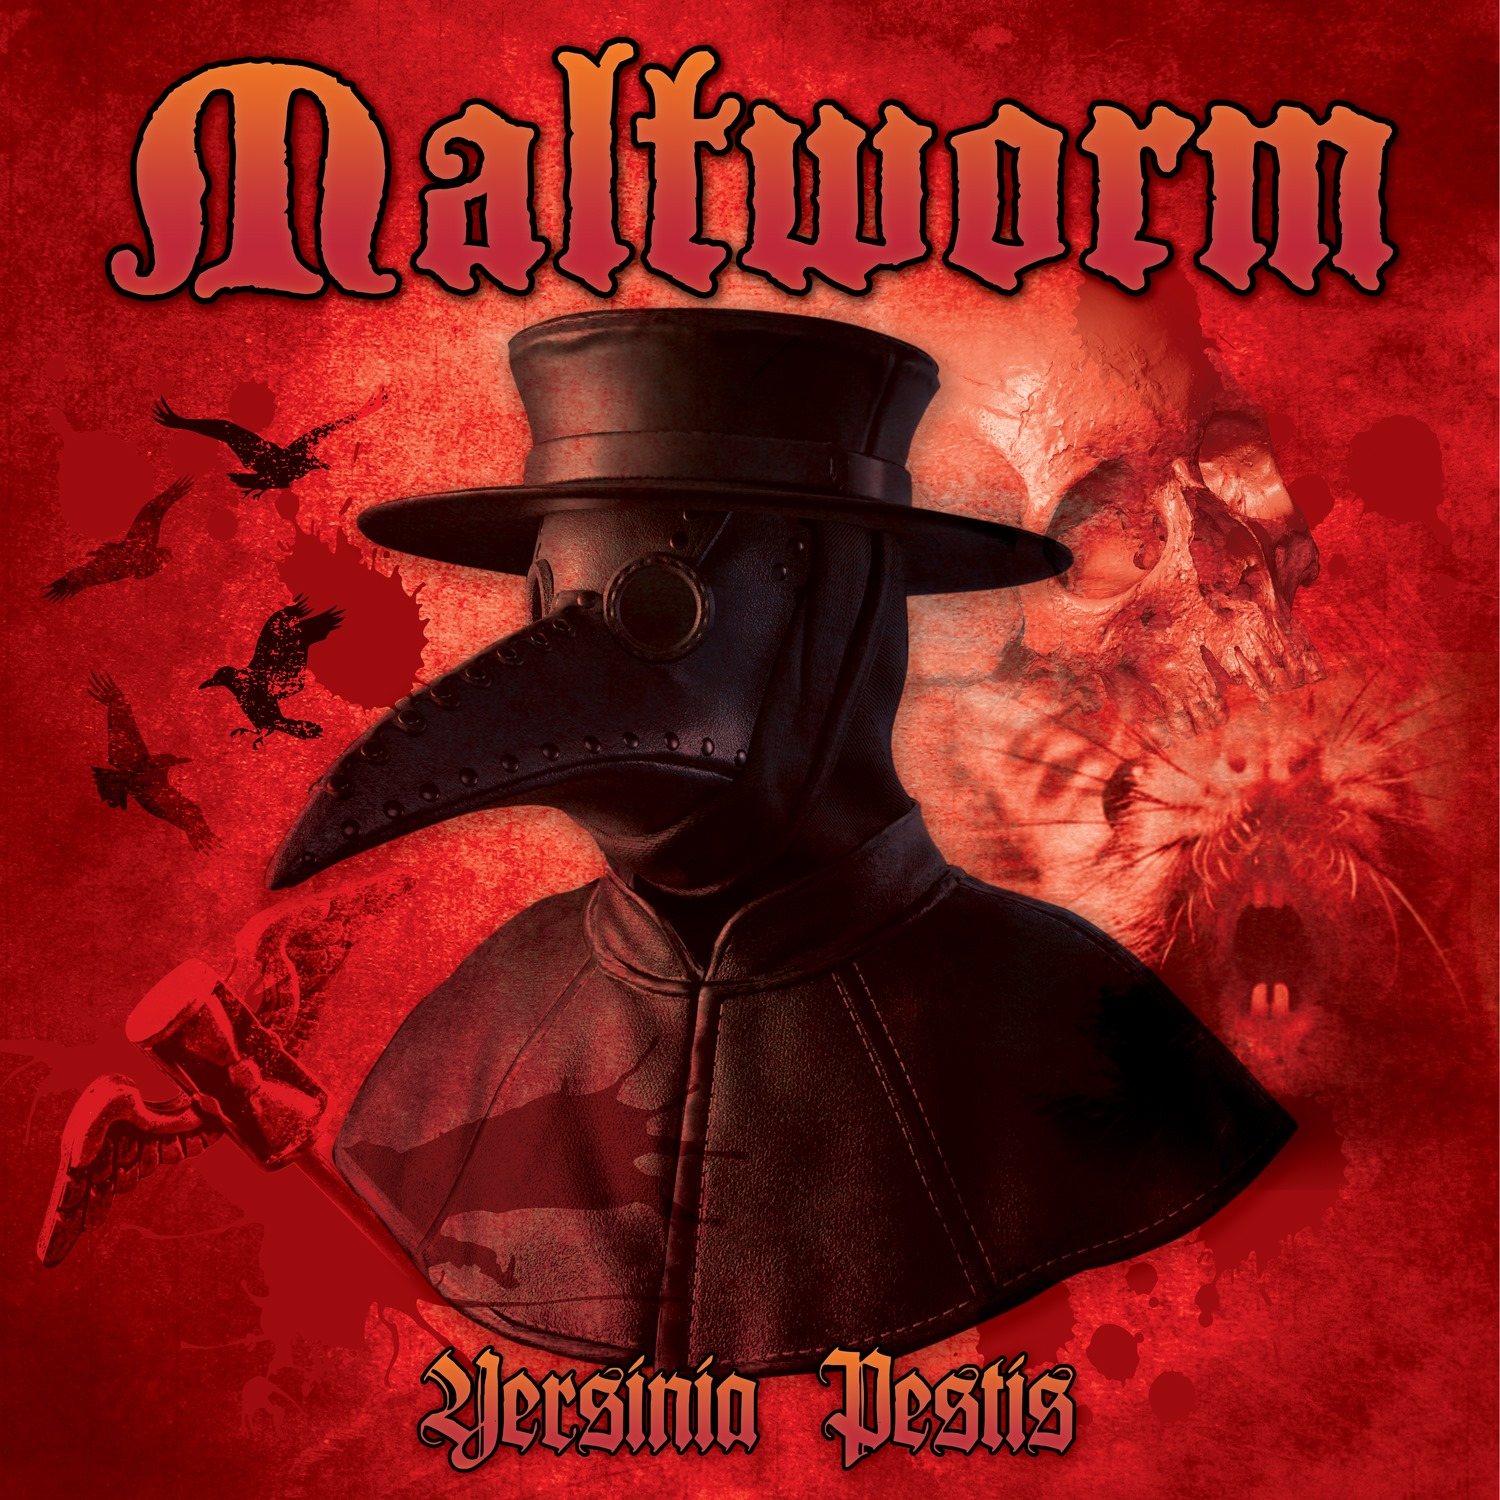 Maltworm - Yersinia Pestis (Single 2019)